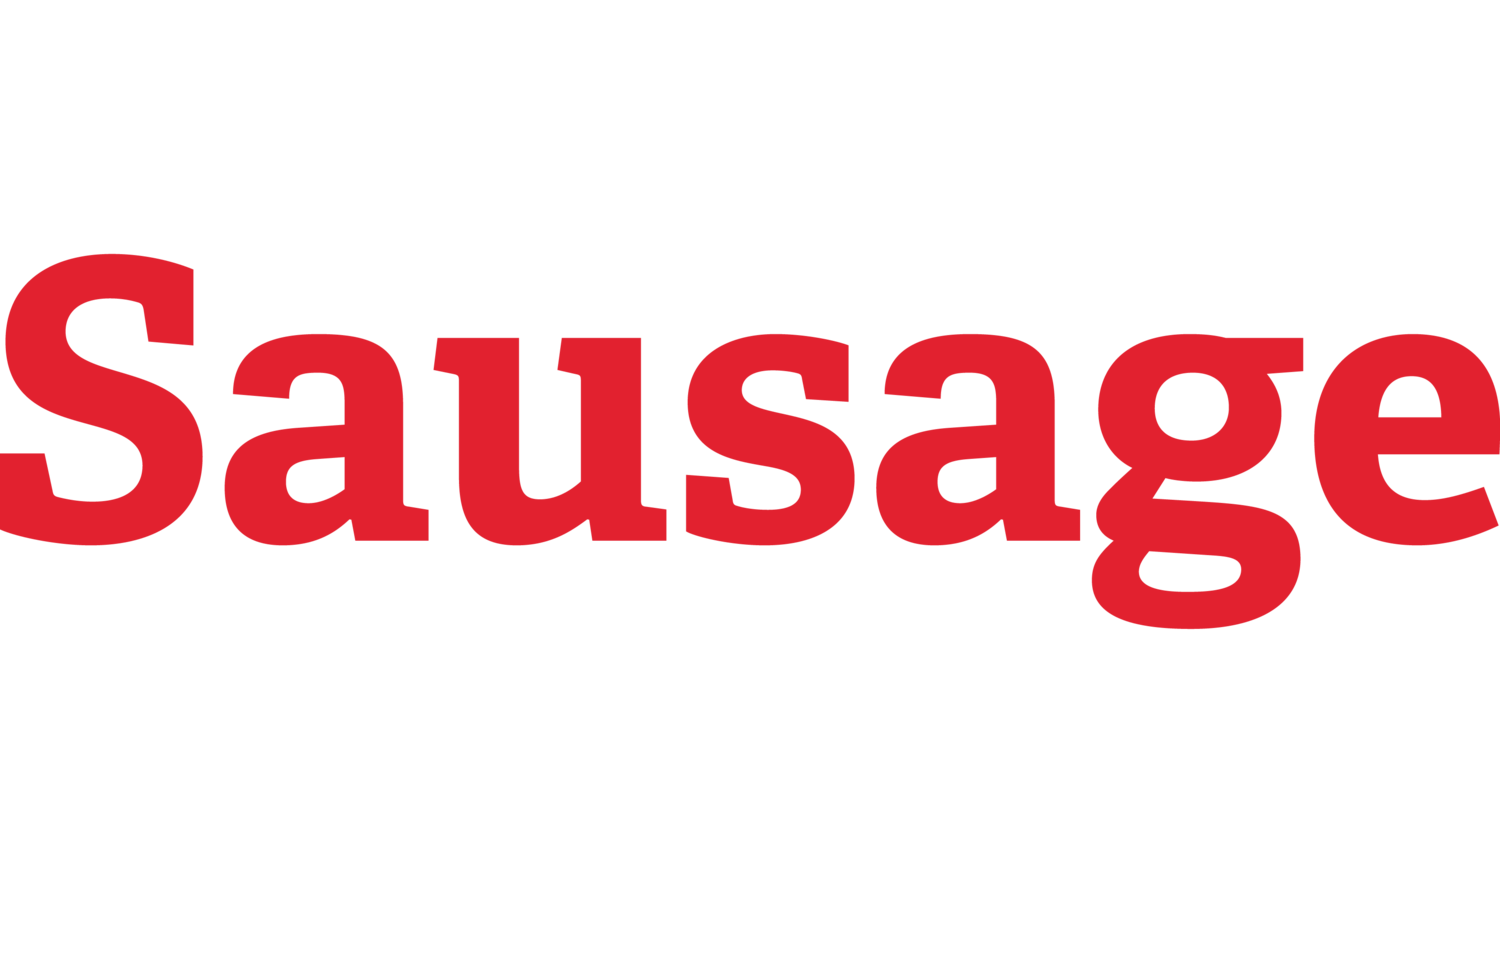 South Central Sausage